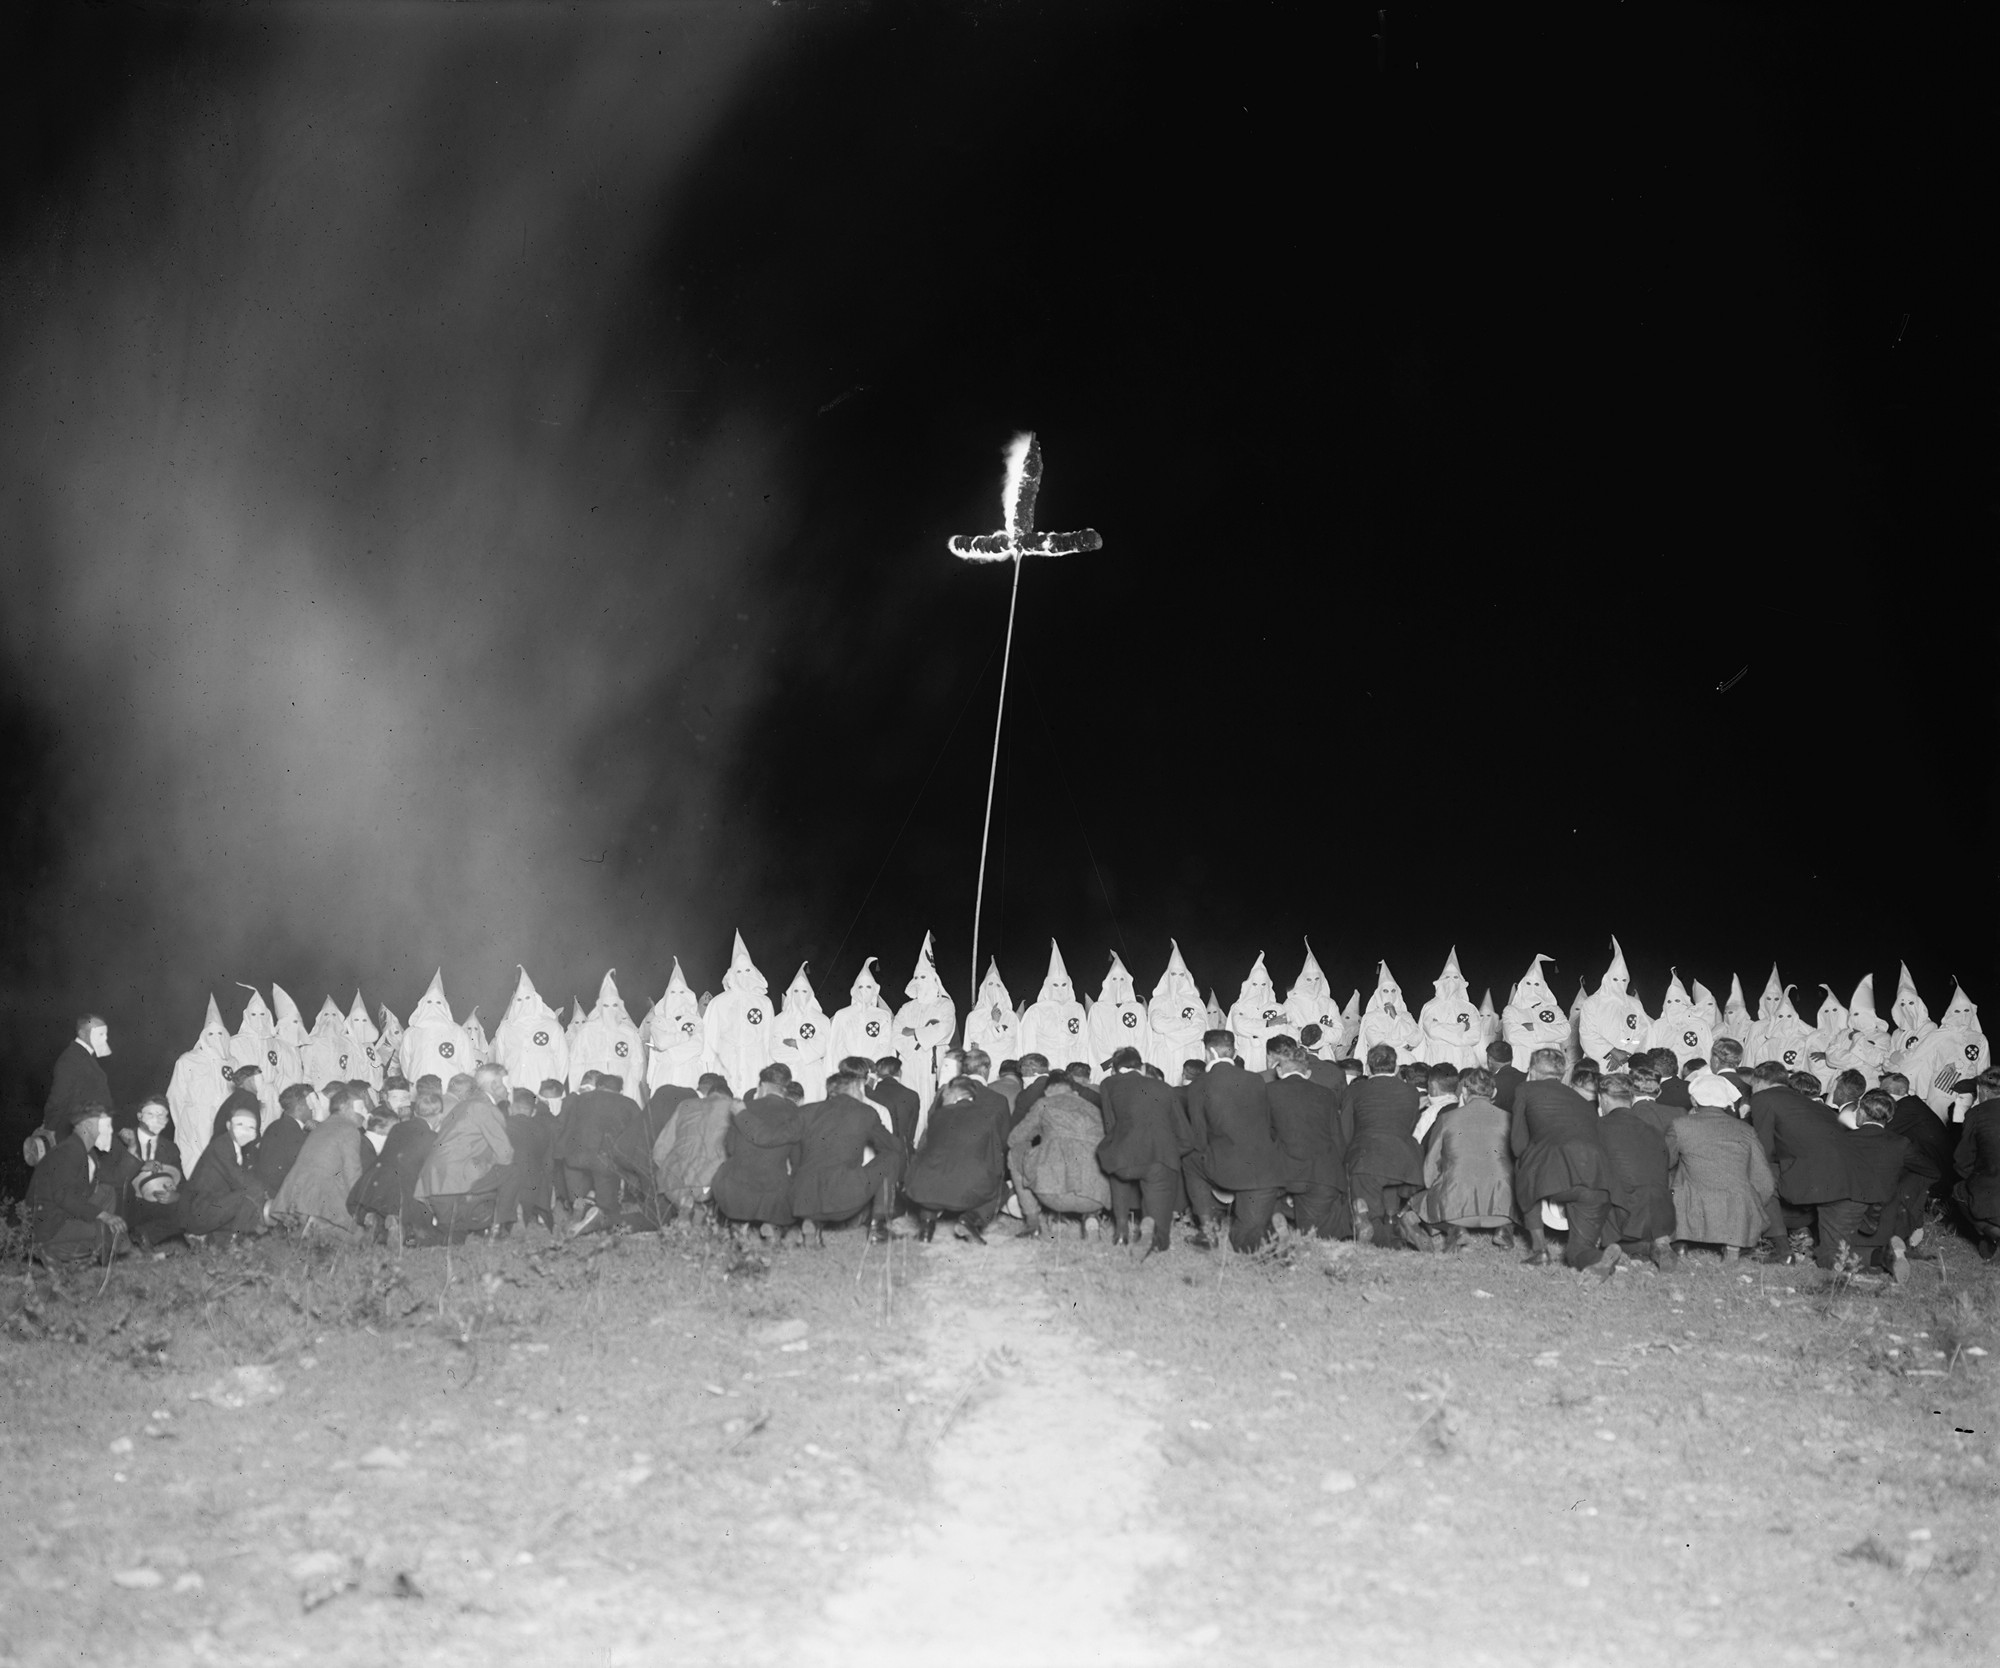 Why does the Ku Klux Klan burn crosses? They got the idea from a movie.